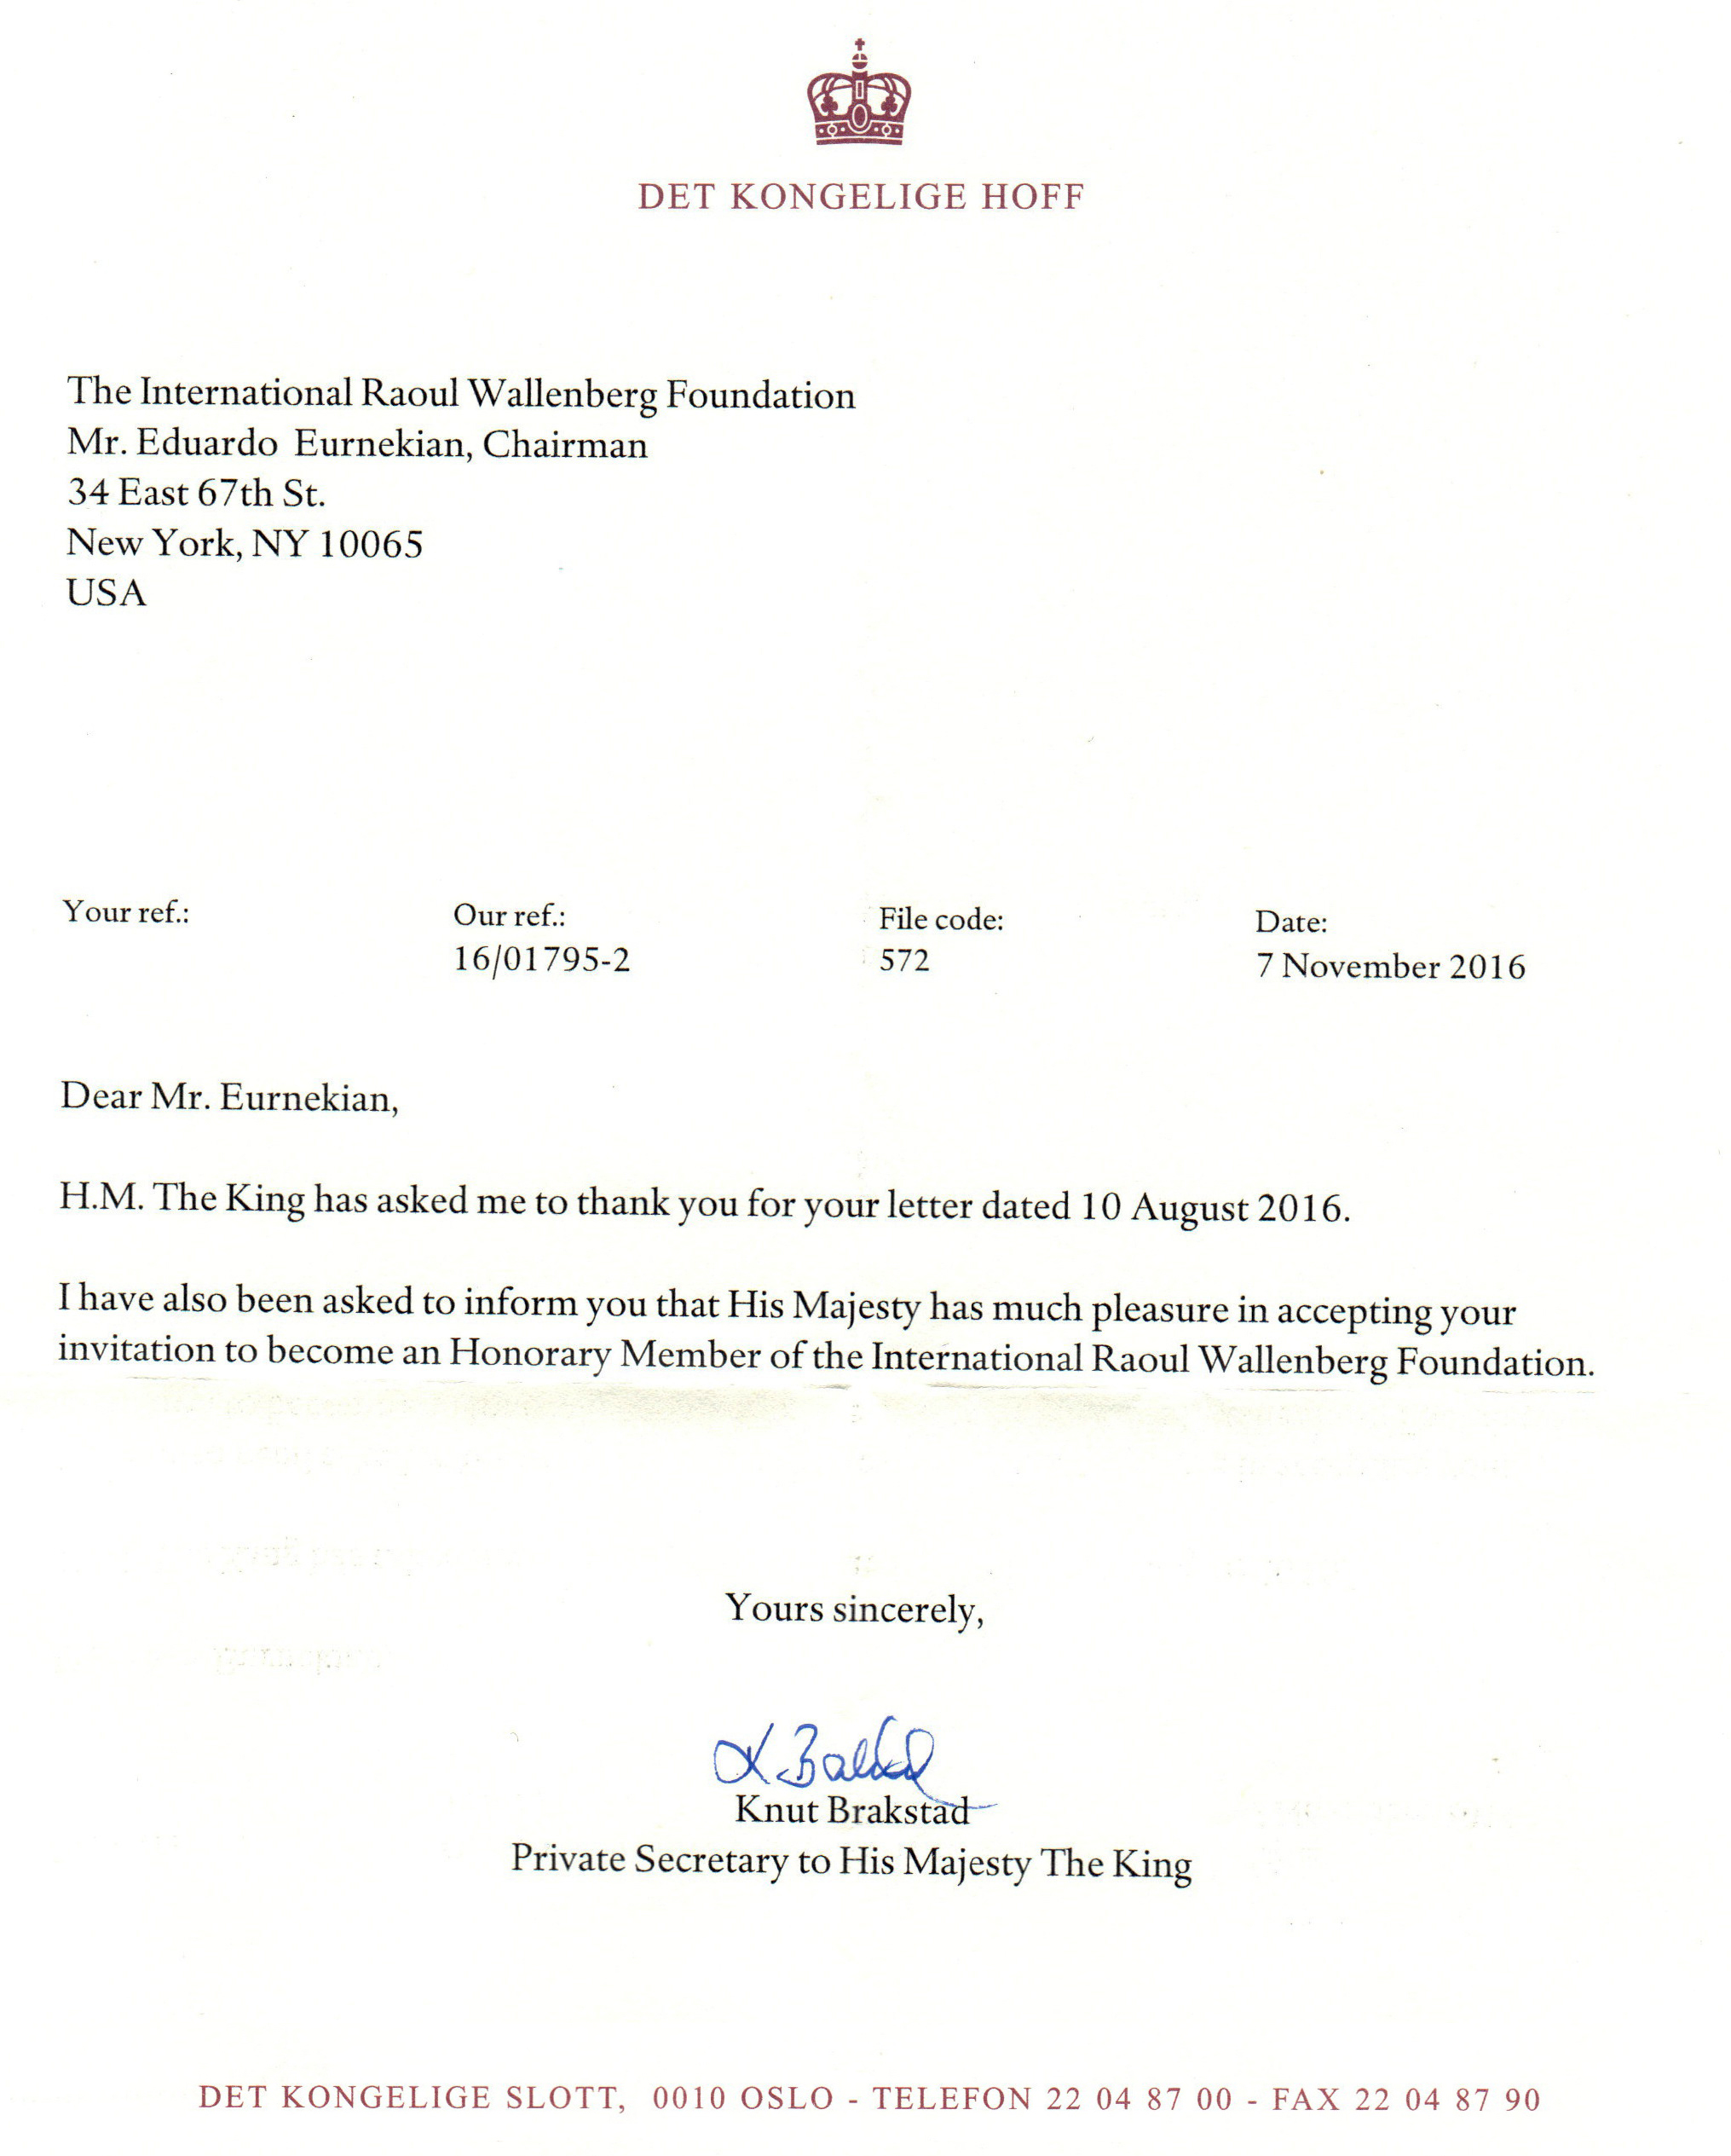 His majesty king harald of norway new honorary member of the through a letter addressed to eduardo eurnekian chairman of the raoul wallenberg foundation his majesty king harald of norway accepted to become an stopboris Images